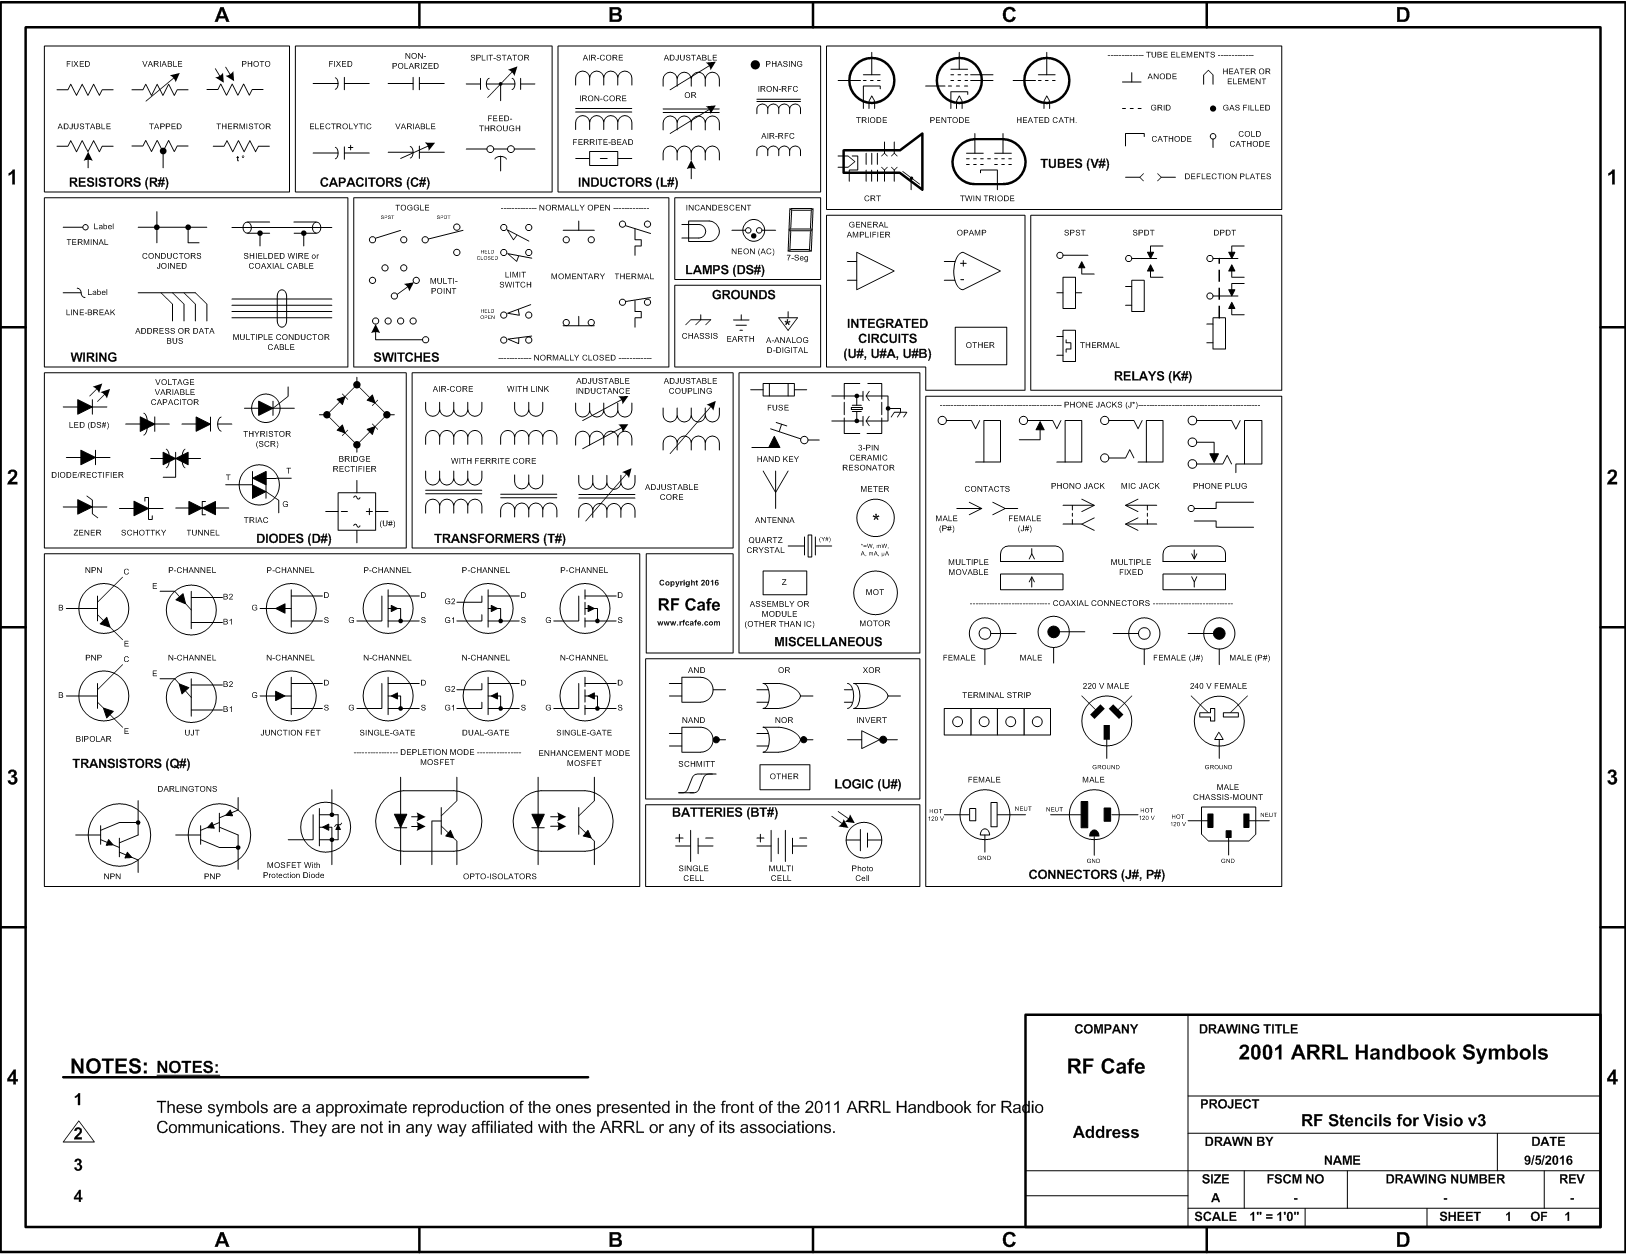 1966 Mustang Wiring Diagrams besides Volvo Wiring Diagrams D61afbd8d7bb0bba together with 7j3n91 likewise Wiring Schematic 7103103 besides Y2hlbSA3IHBhbmVsIGRpYWdyYW0. on panel wiring diagram symbols